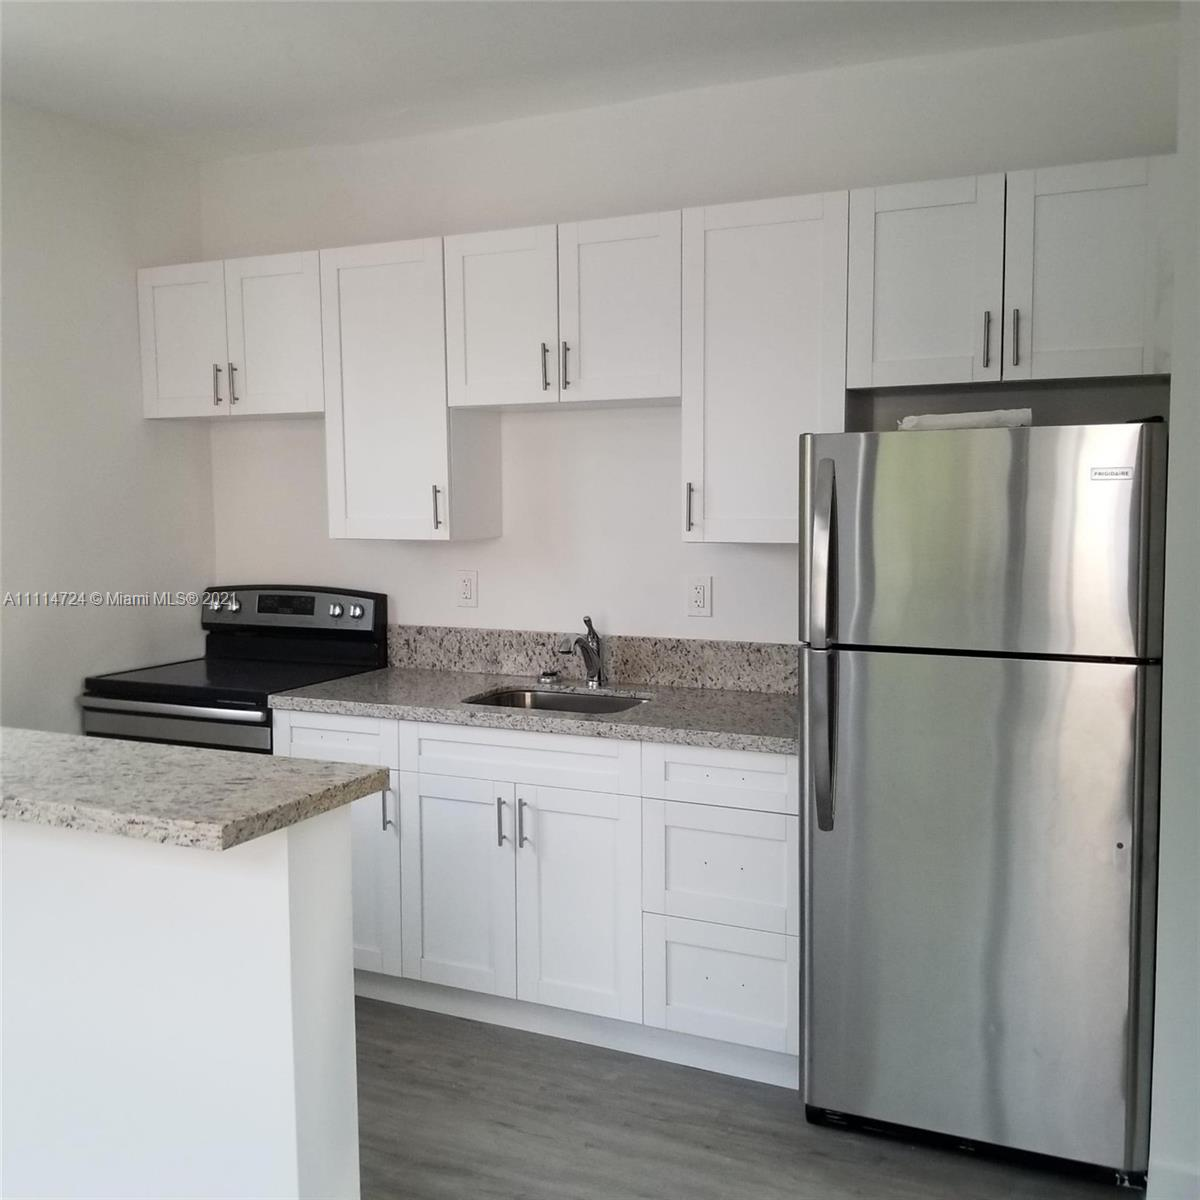 337 SW 5th Ave #7 For Sale A11114724, FL